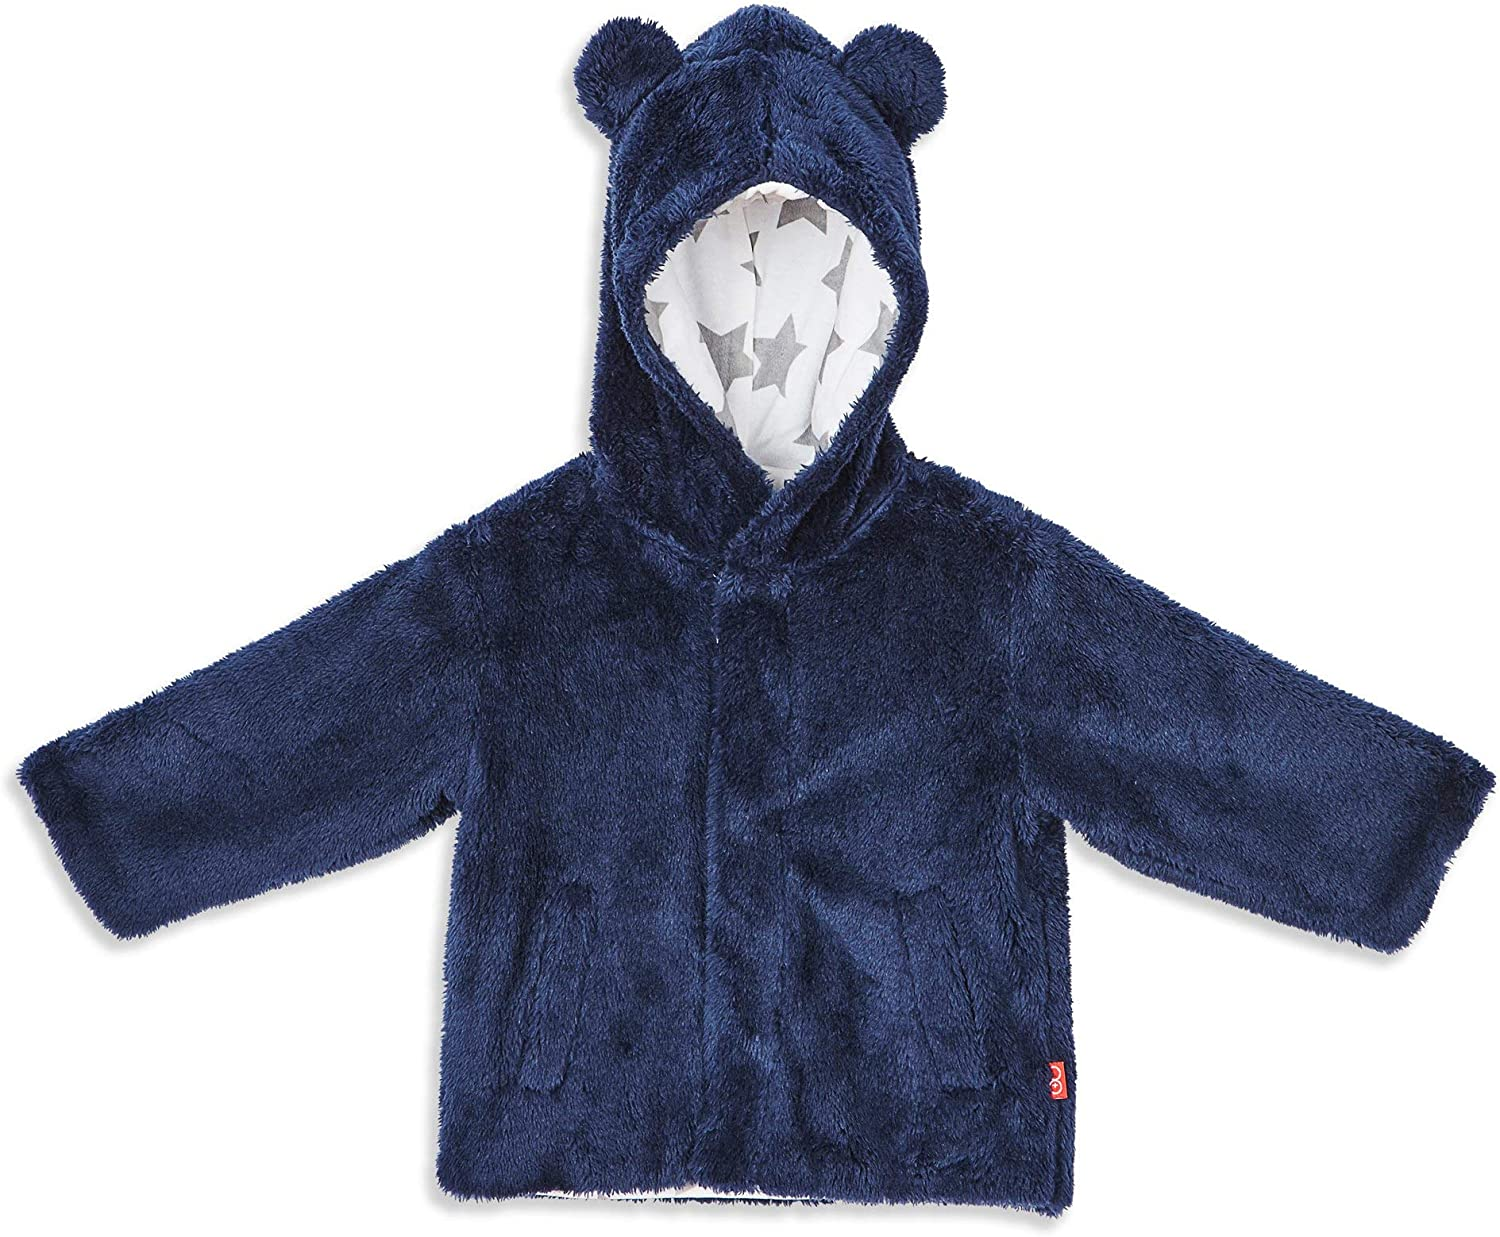 Magnificent Baby Magnetic Me Baby Bear Fleece Magnetic Hooded Jacket